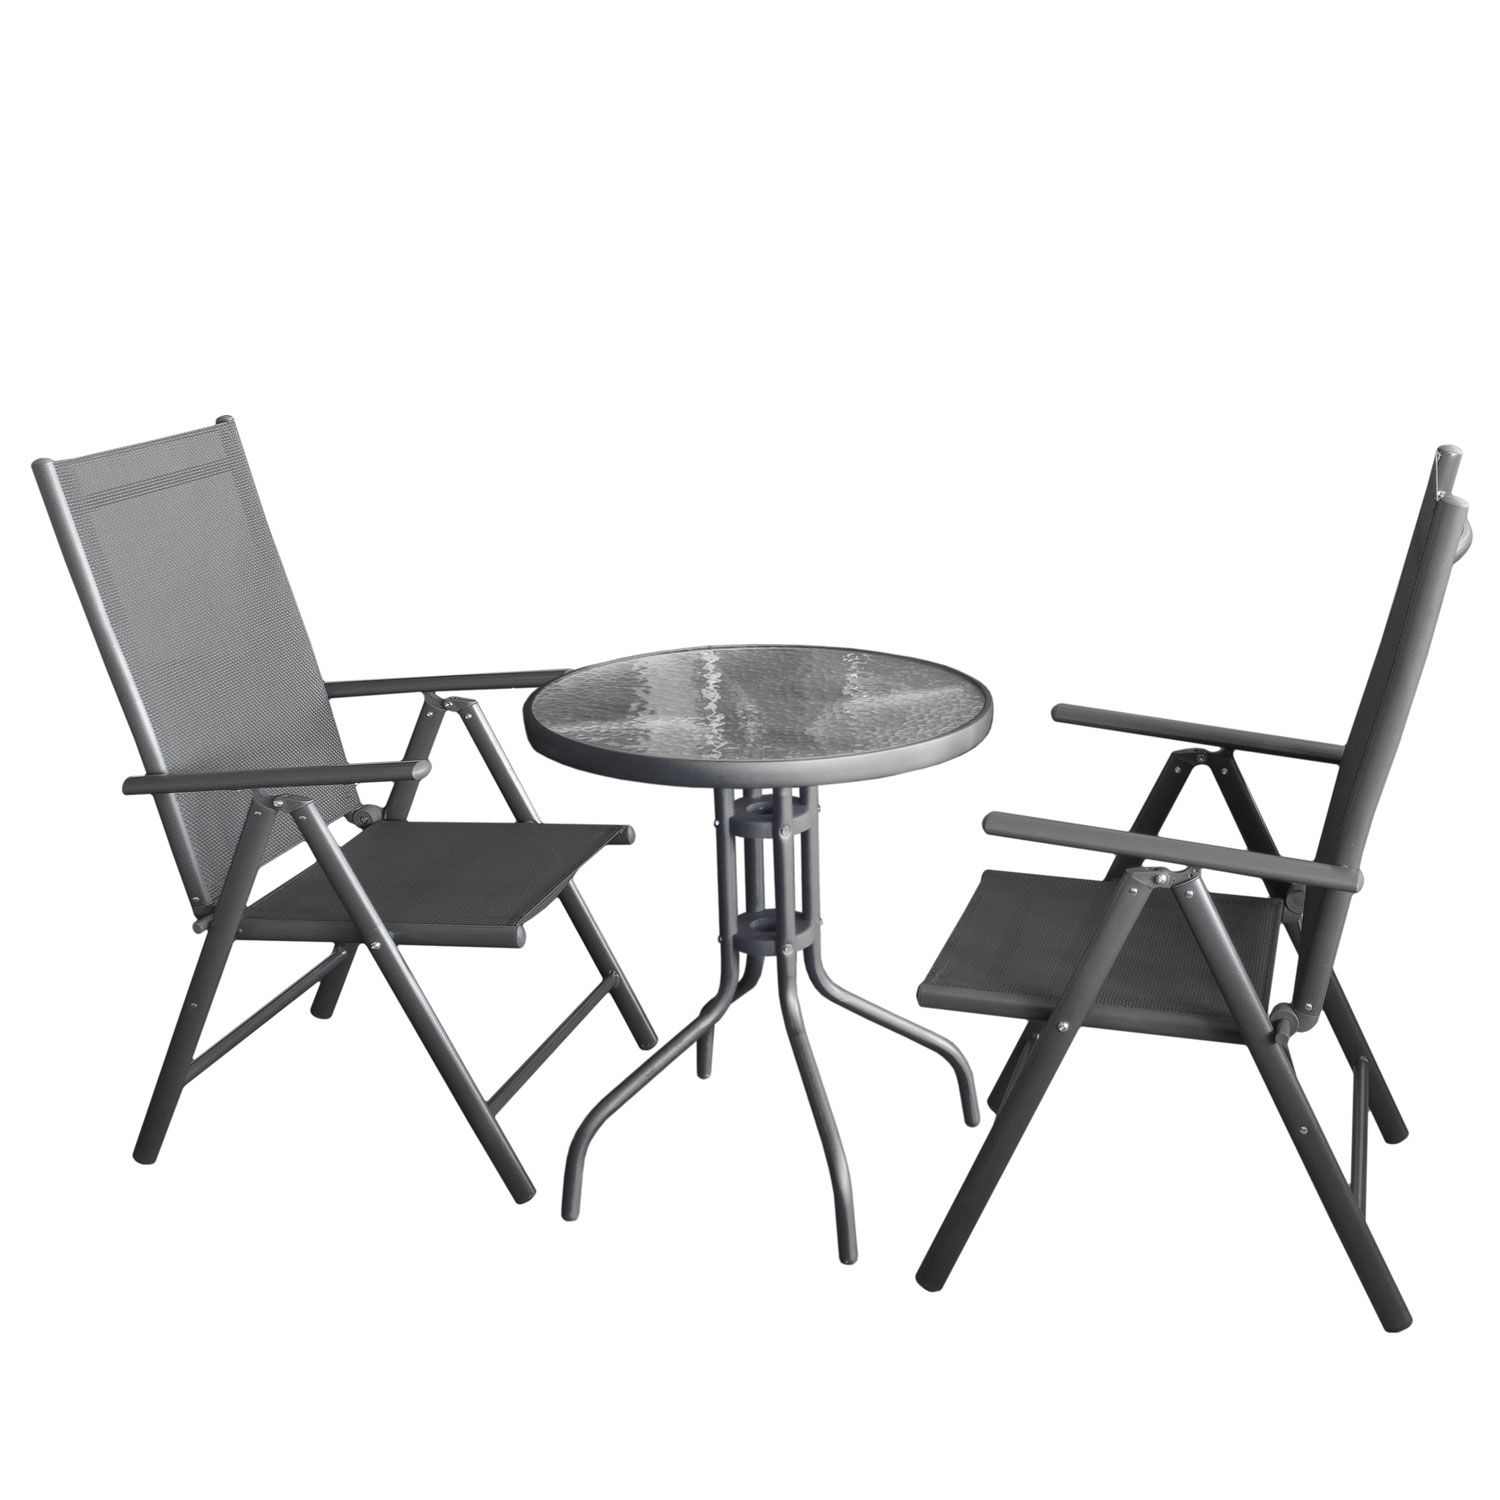 balkonm bel glastisch 60cm 2x hochlehner grau grau garten bistro und balkonsets 3 teilig. Black Bedroom Furniture Sets. Home Design Ideas